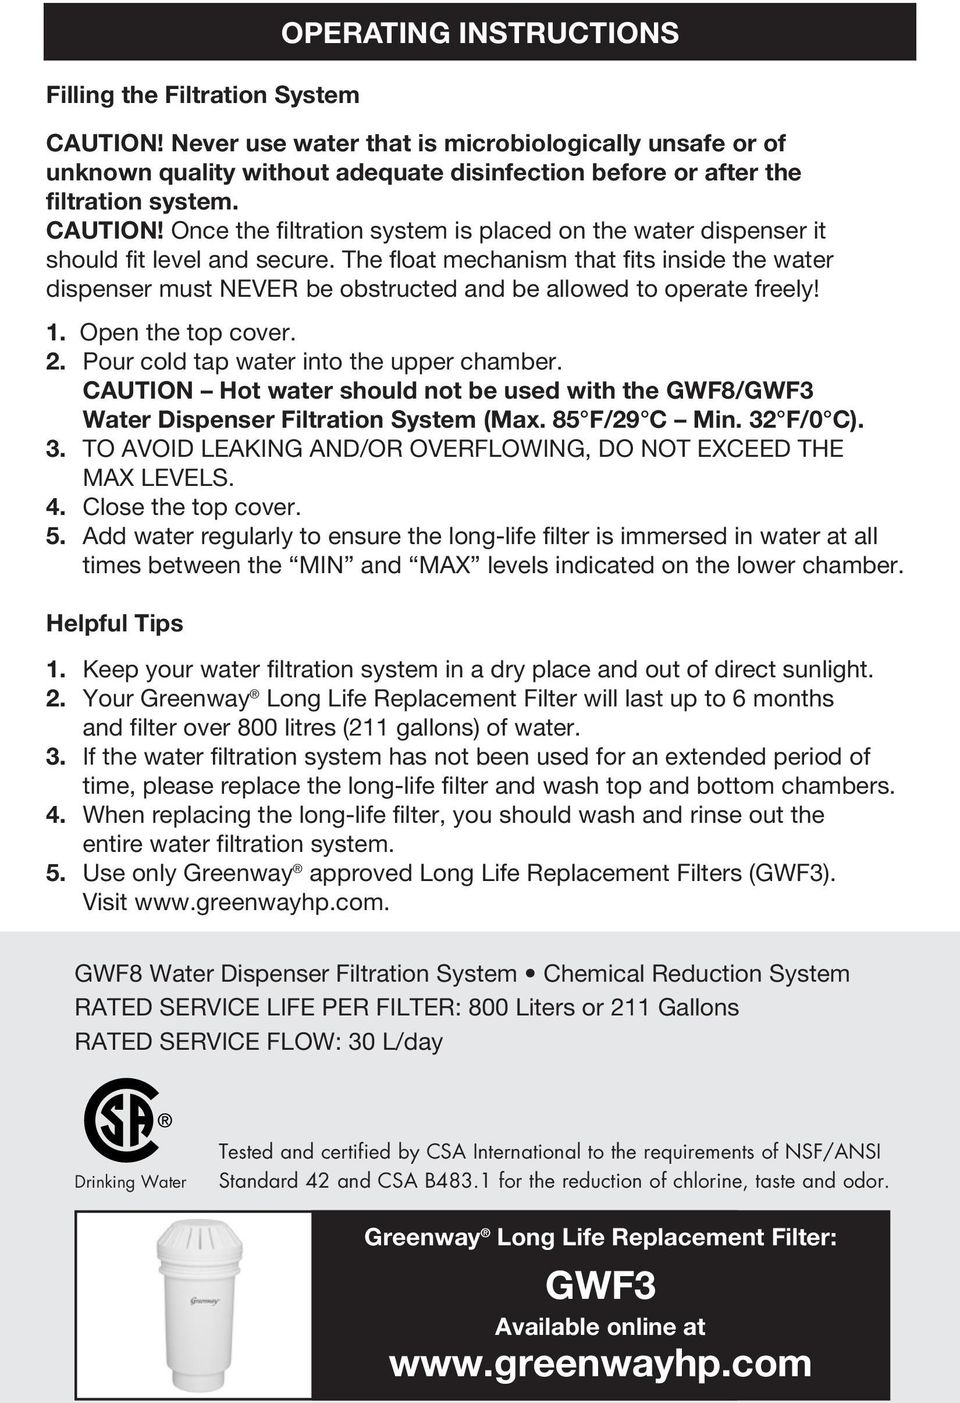 CAUTION Hot water should not be used with the GWF8/GWF3 Water Dispenser Filtration System (Max. 85 F/29 C Min. 32 F/0 C). 3. TO AVOID LEAKING AND/OR OVERFLOWING, DO NOT EXCEED THE MAX LEVELS. 4.